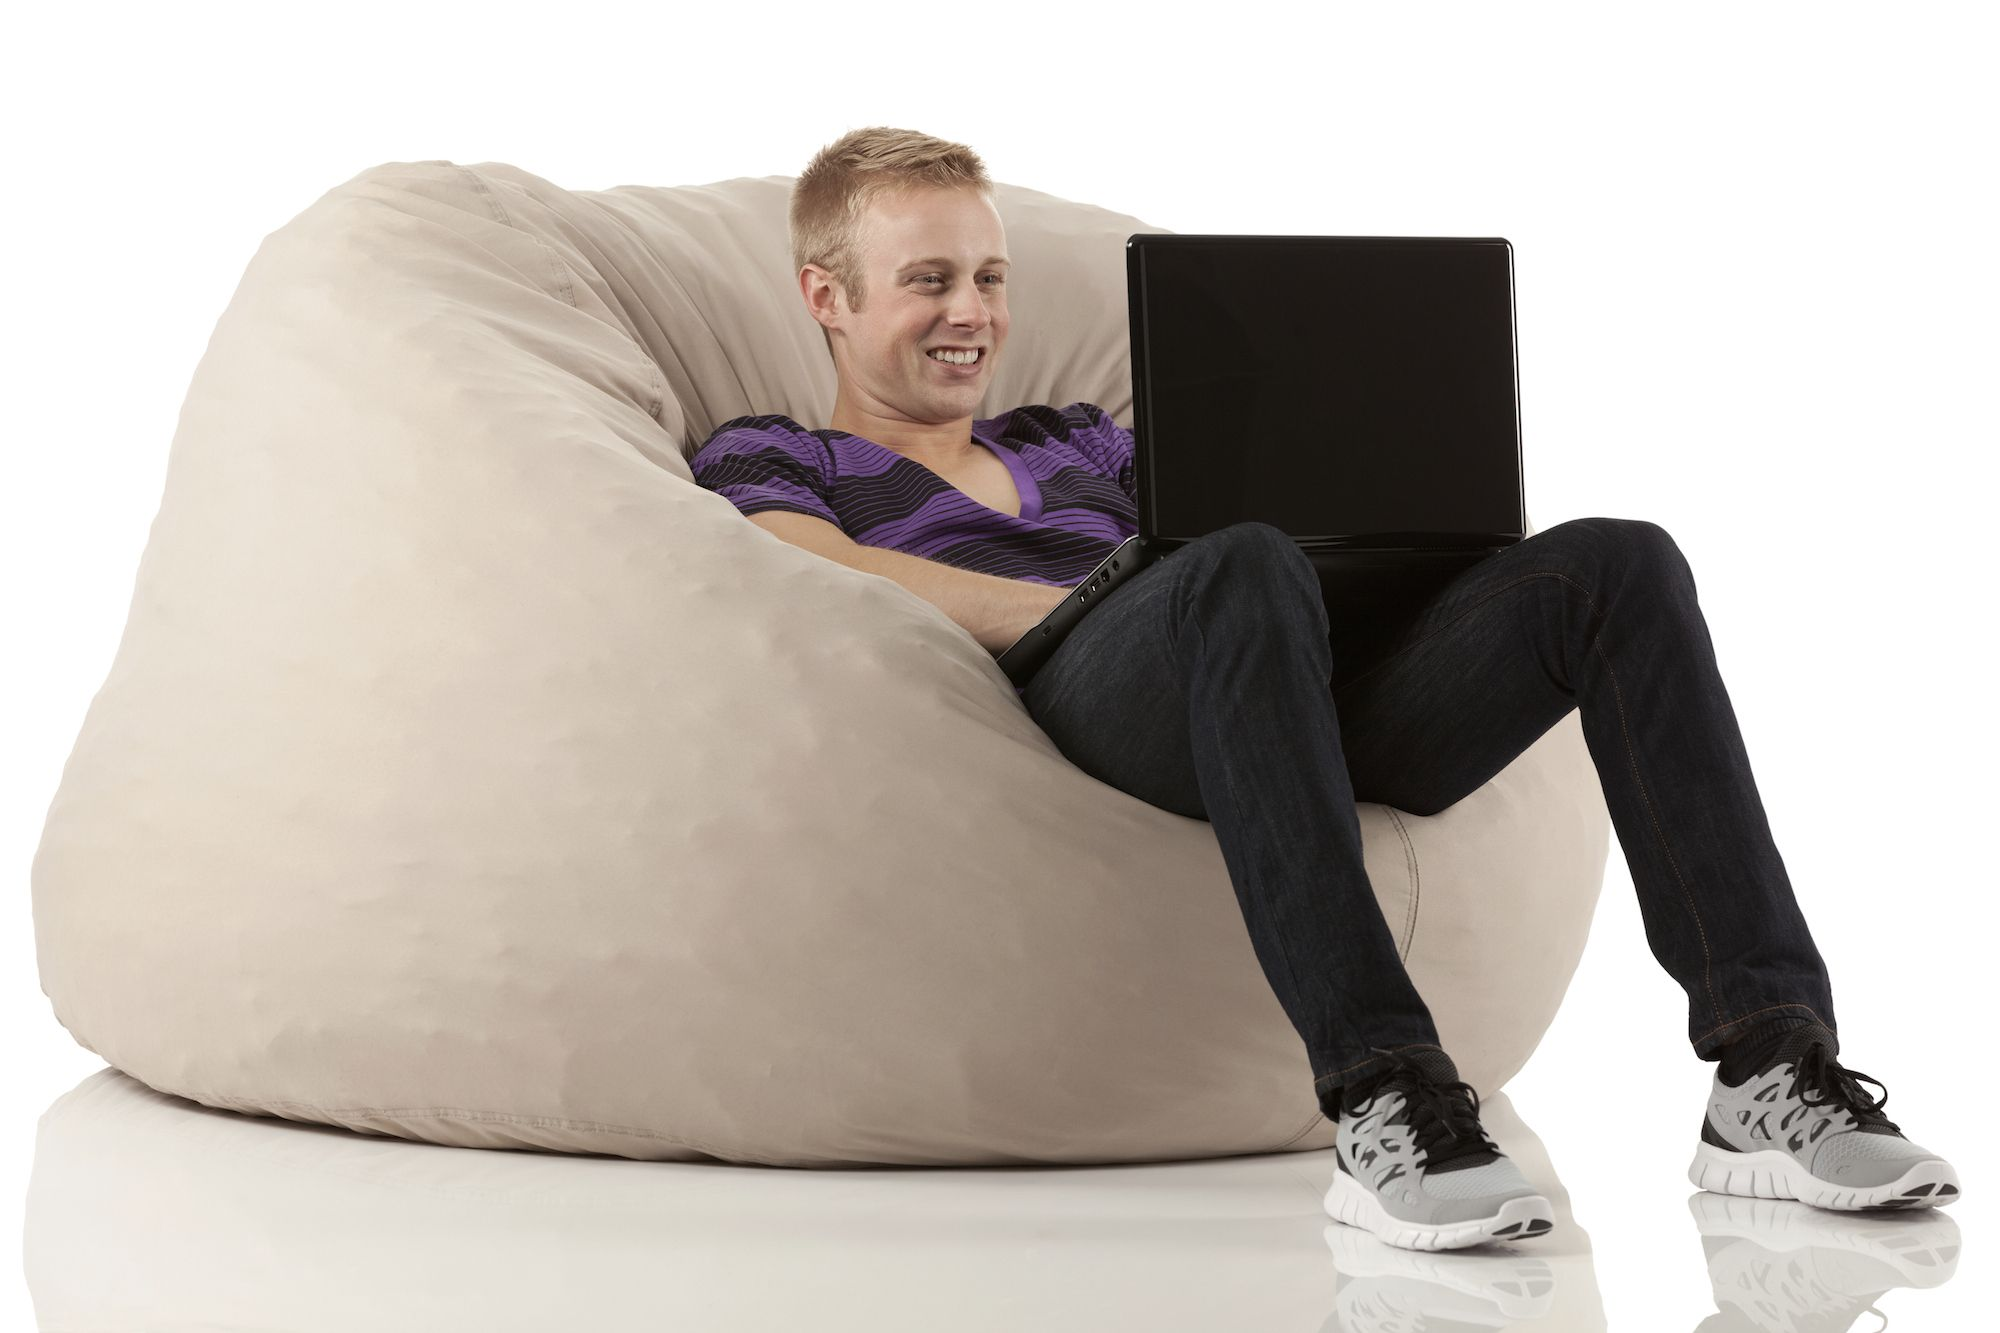 Bean Bag Chairs Are Aggressively Uncool May Kill You